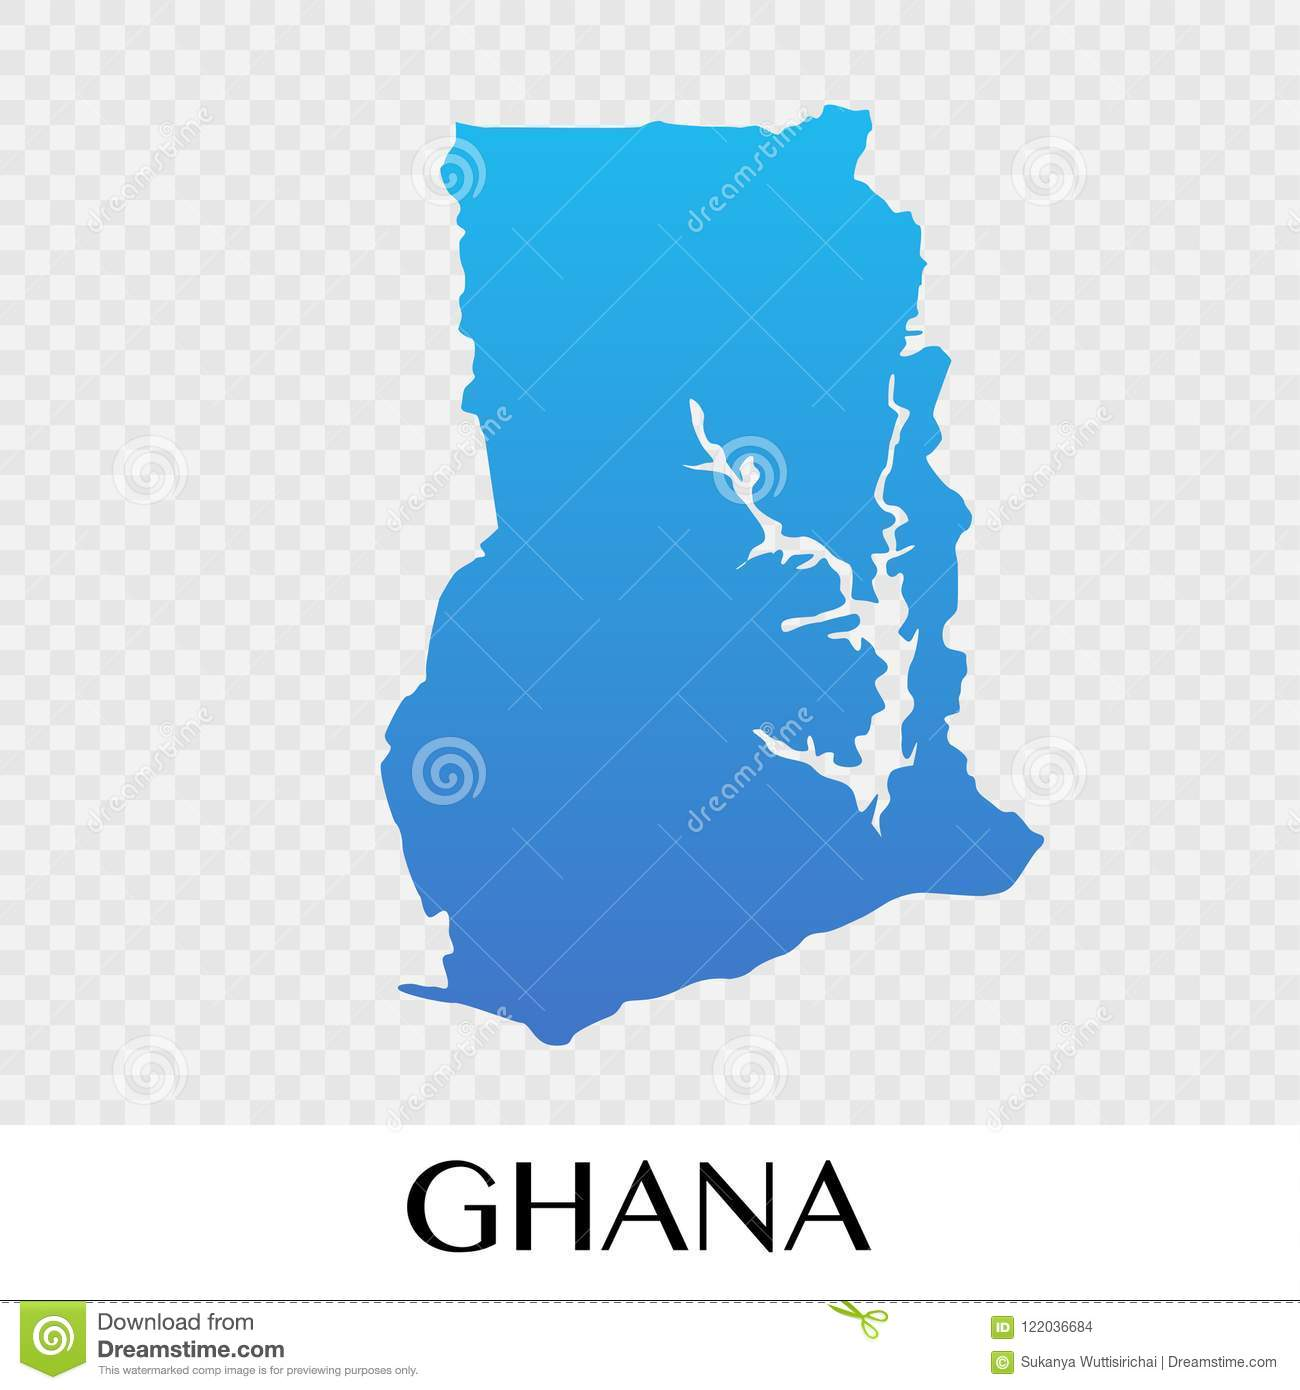 Map Of Africa Showing Ghana.Ghana Map In Africa Continent Illustration Design Stock Vector